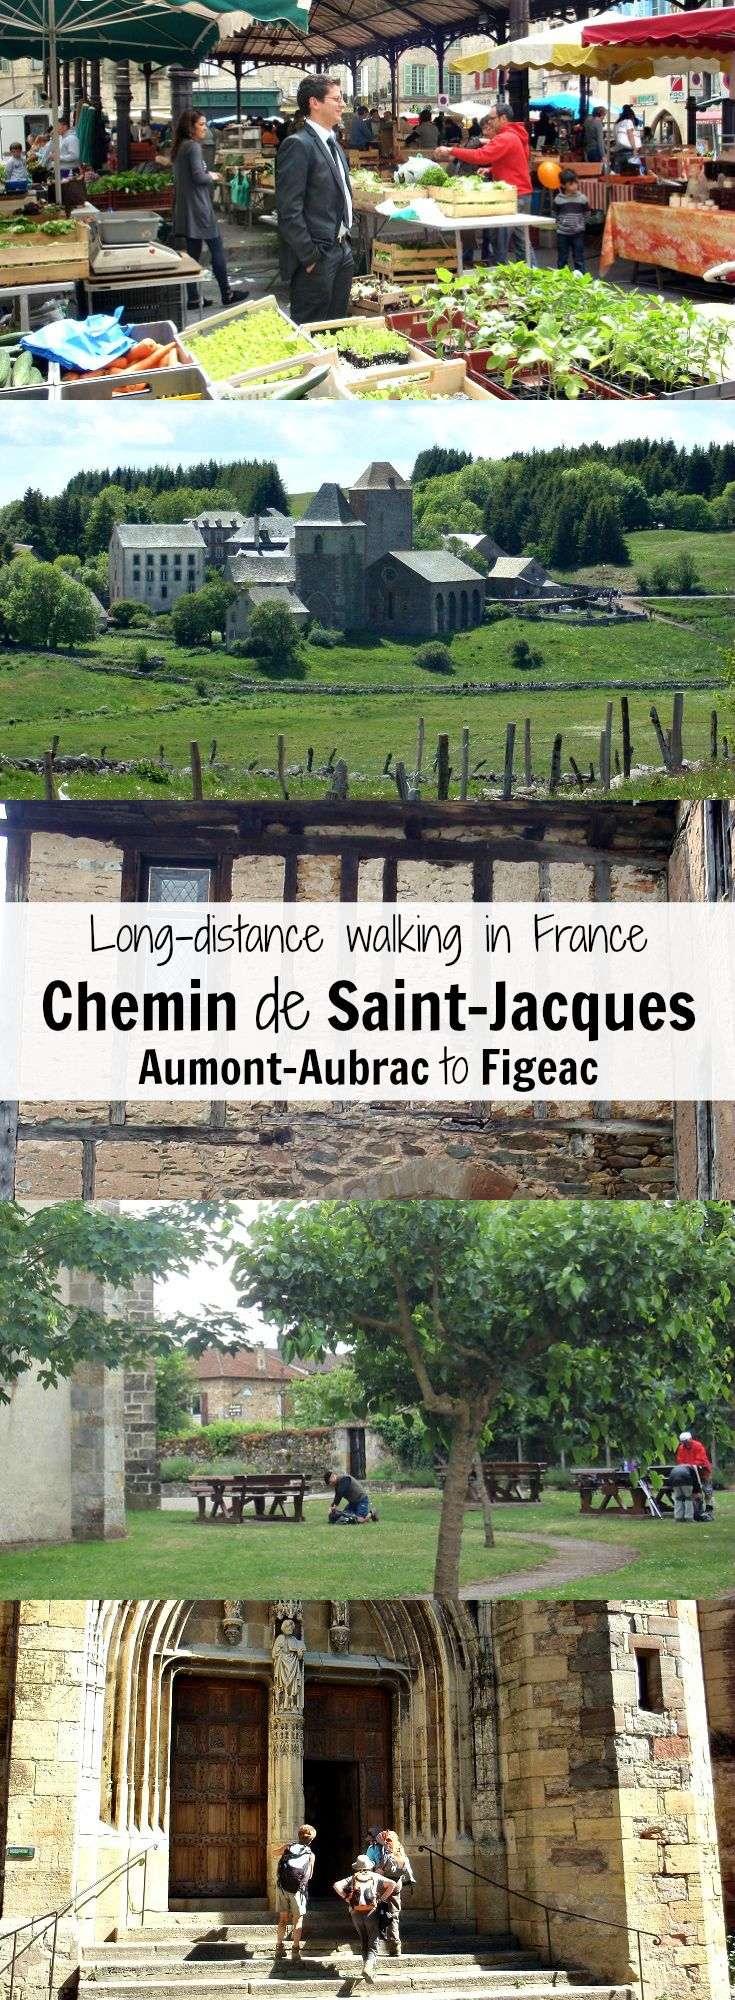 Discover France on a long-distance walk along the Chemin de Saint-Jacques from Aumont-Aubrac to Figeac.